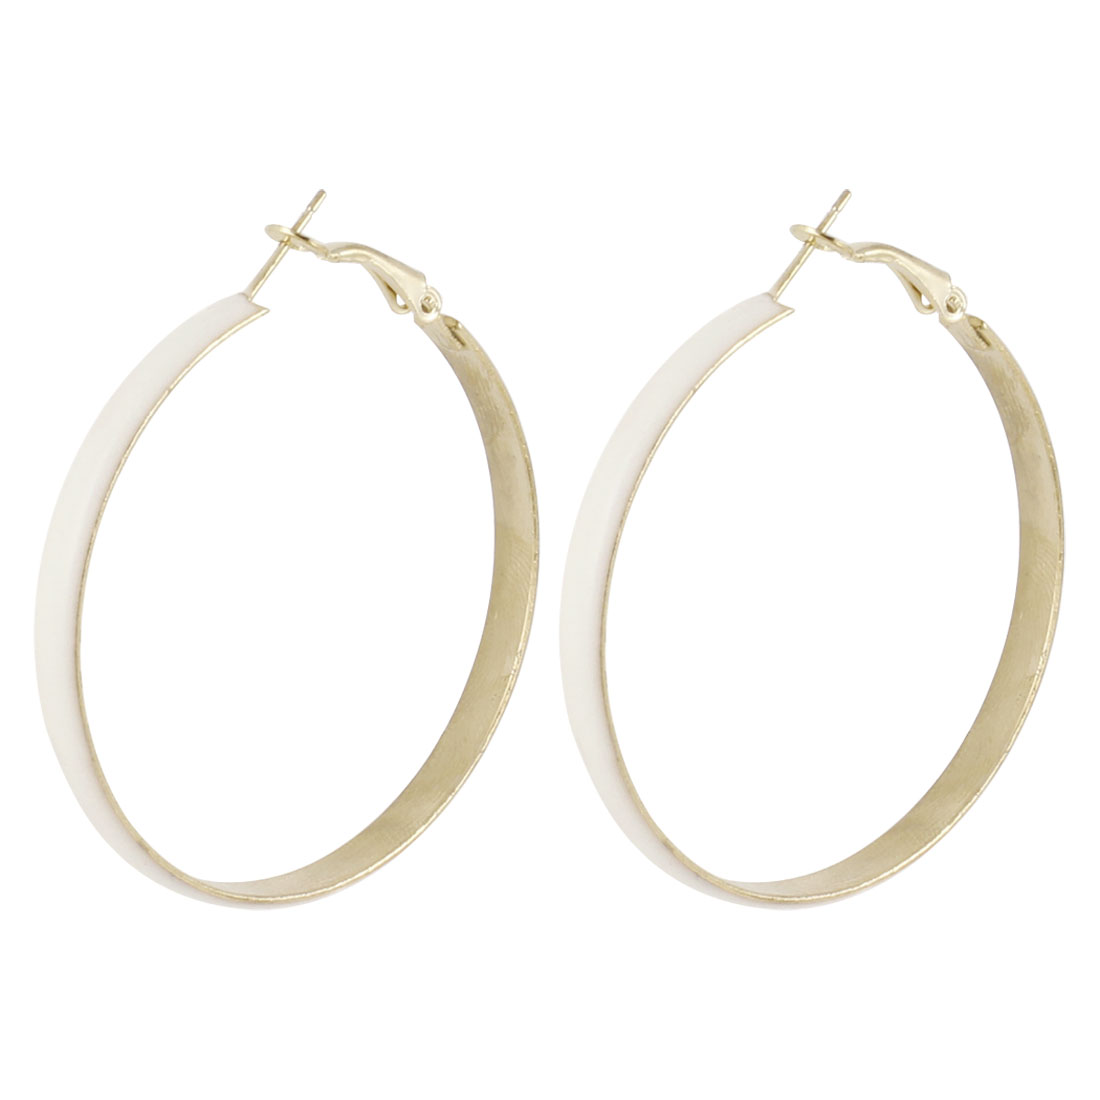 Ladies Alloy Spring Hoop Earrings Eardrop Gold Tone White Pair